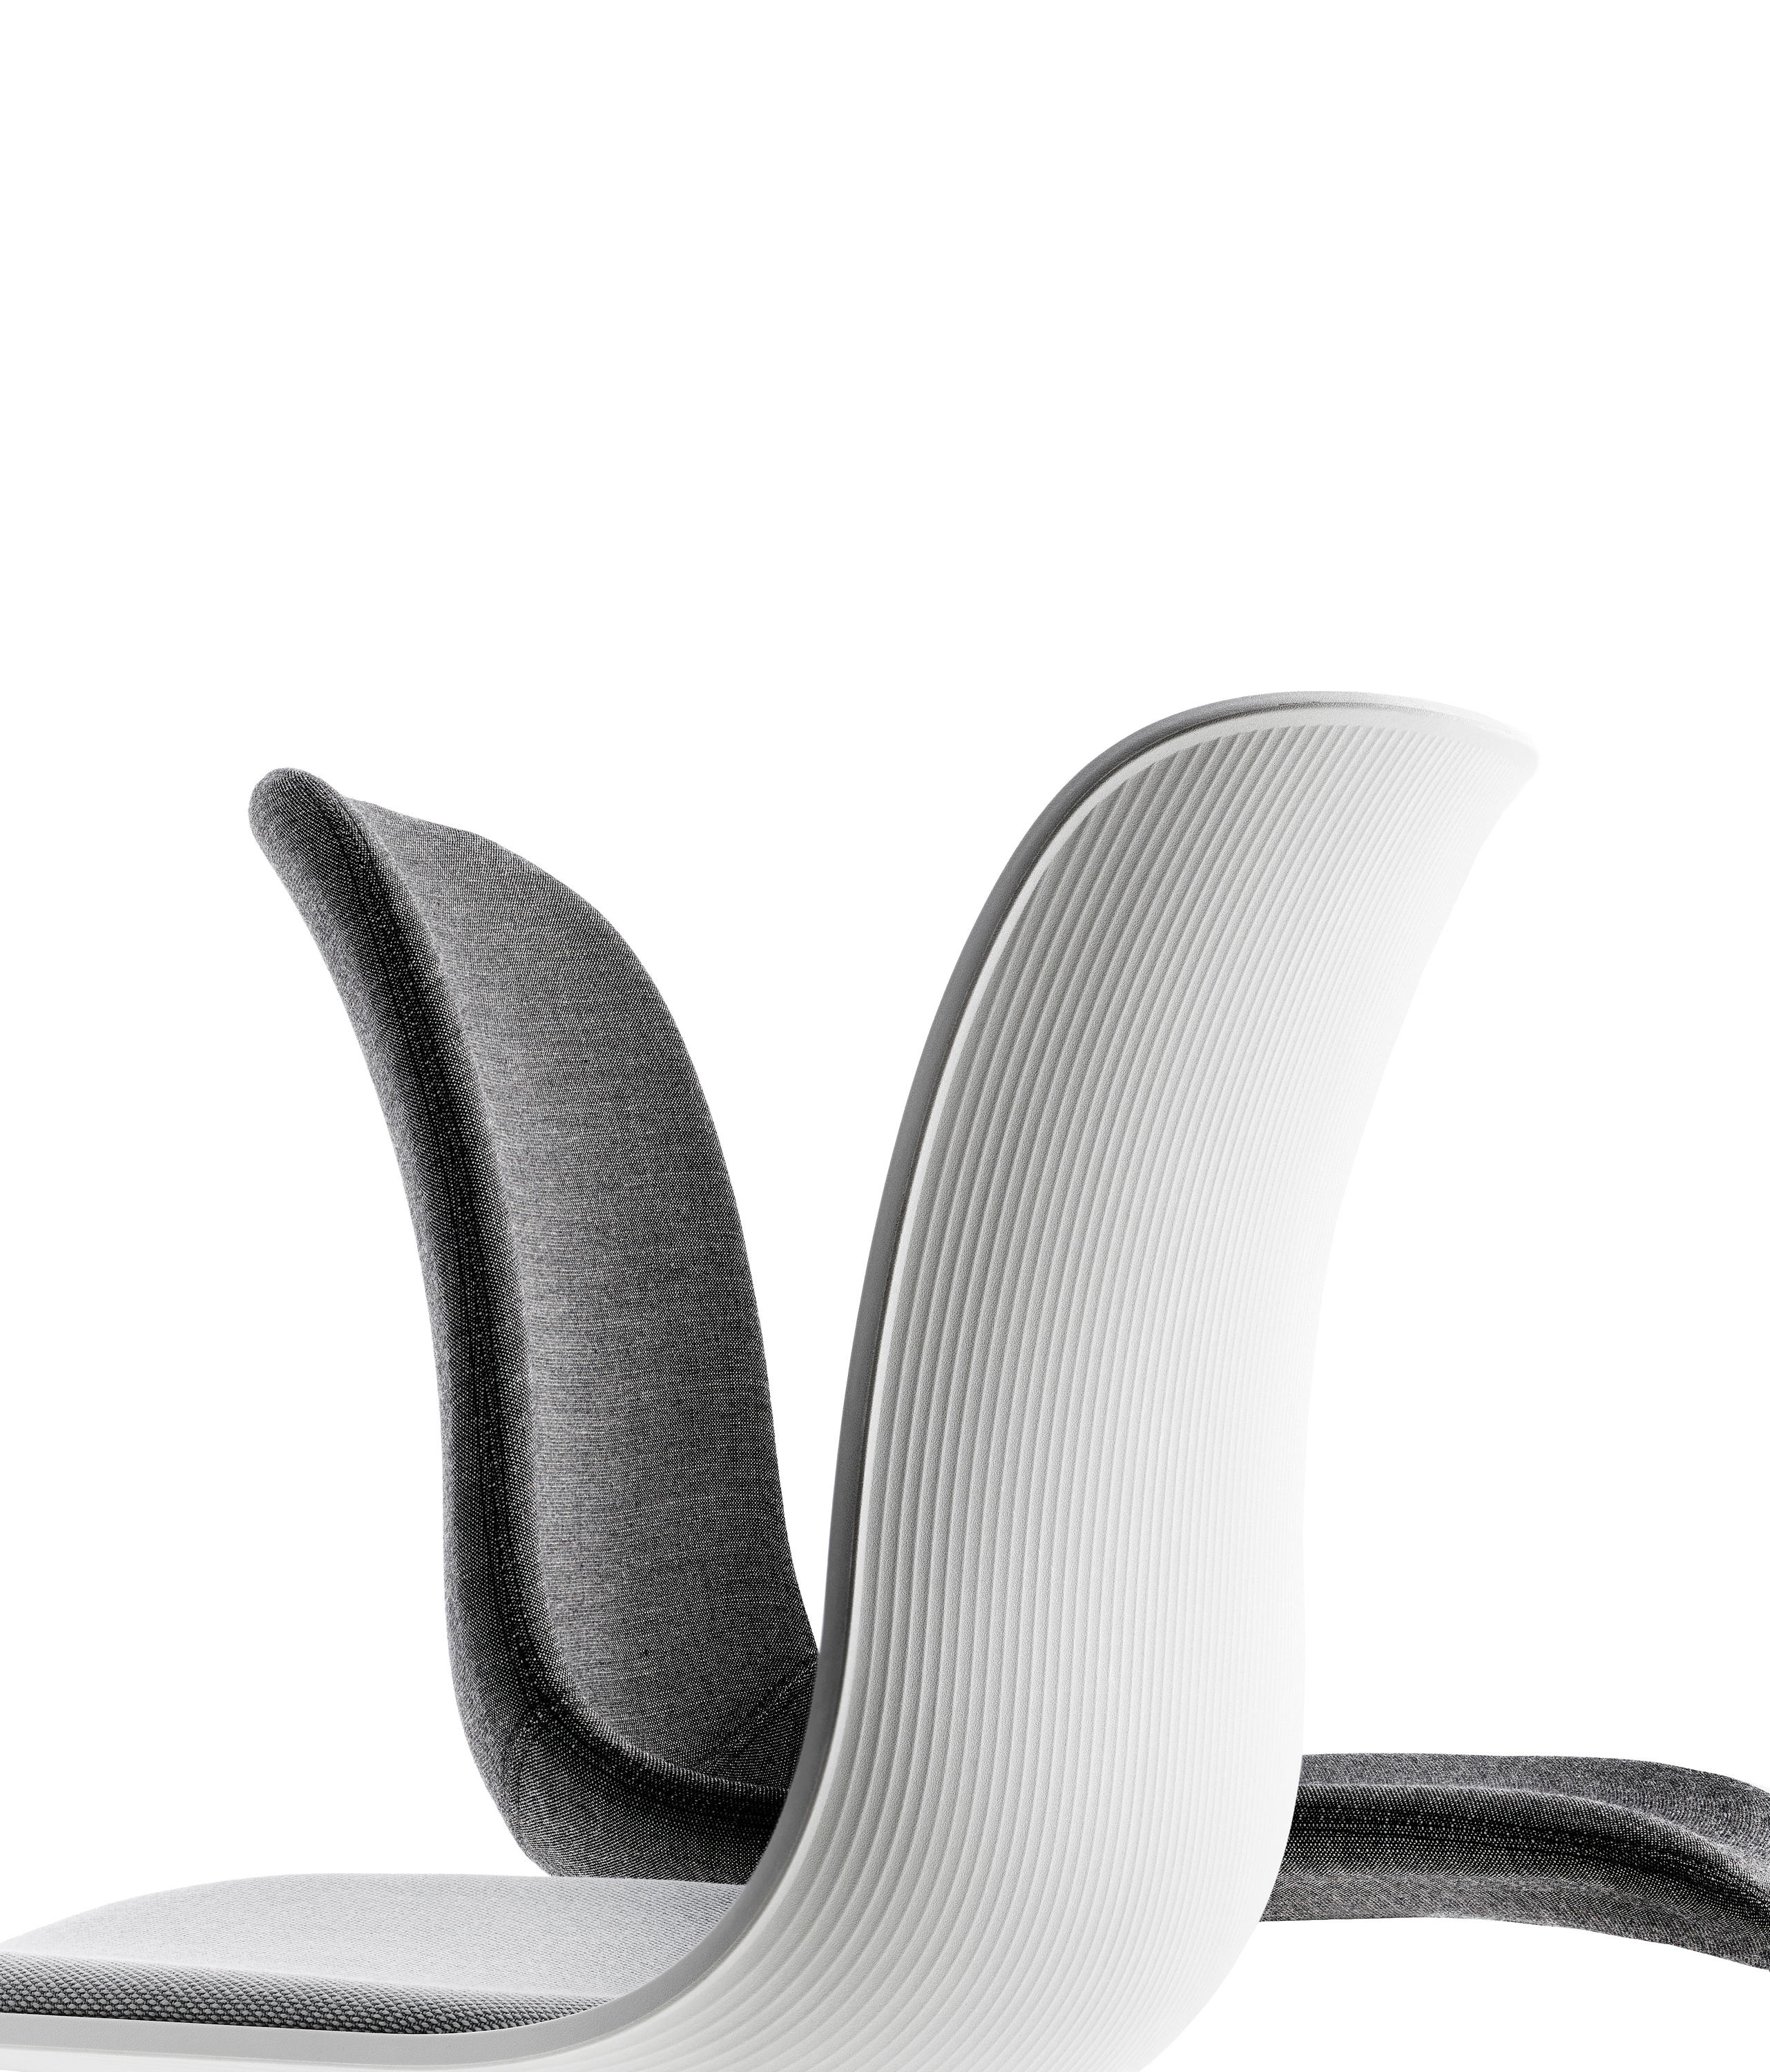 Verve Chair Chairs From Stylex Architonic